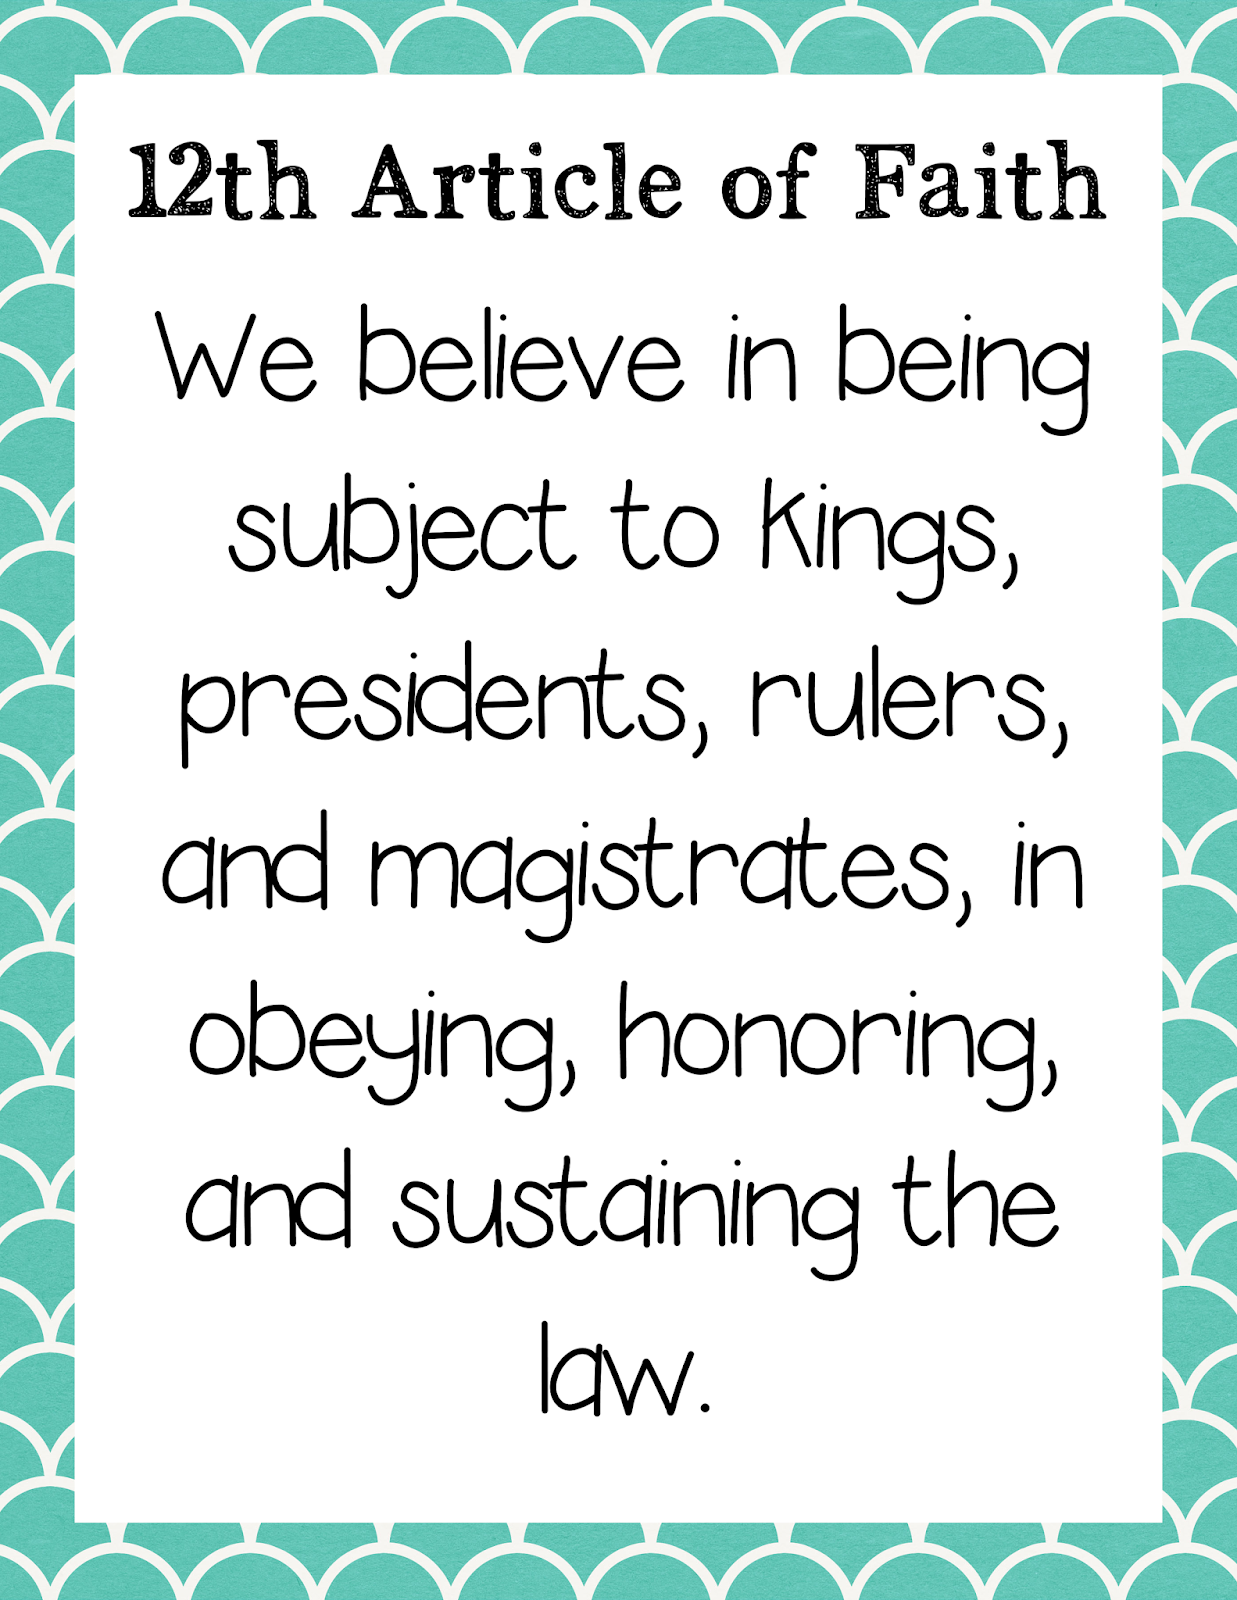 graphic regarding Articles of Faith Printable Cards identify The Relaxed Purple Cottage: I will Obey the Legislation (Lesson 31, Simple 2)